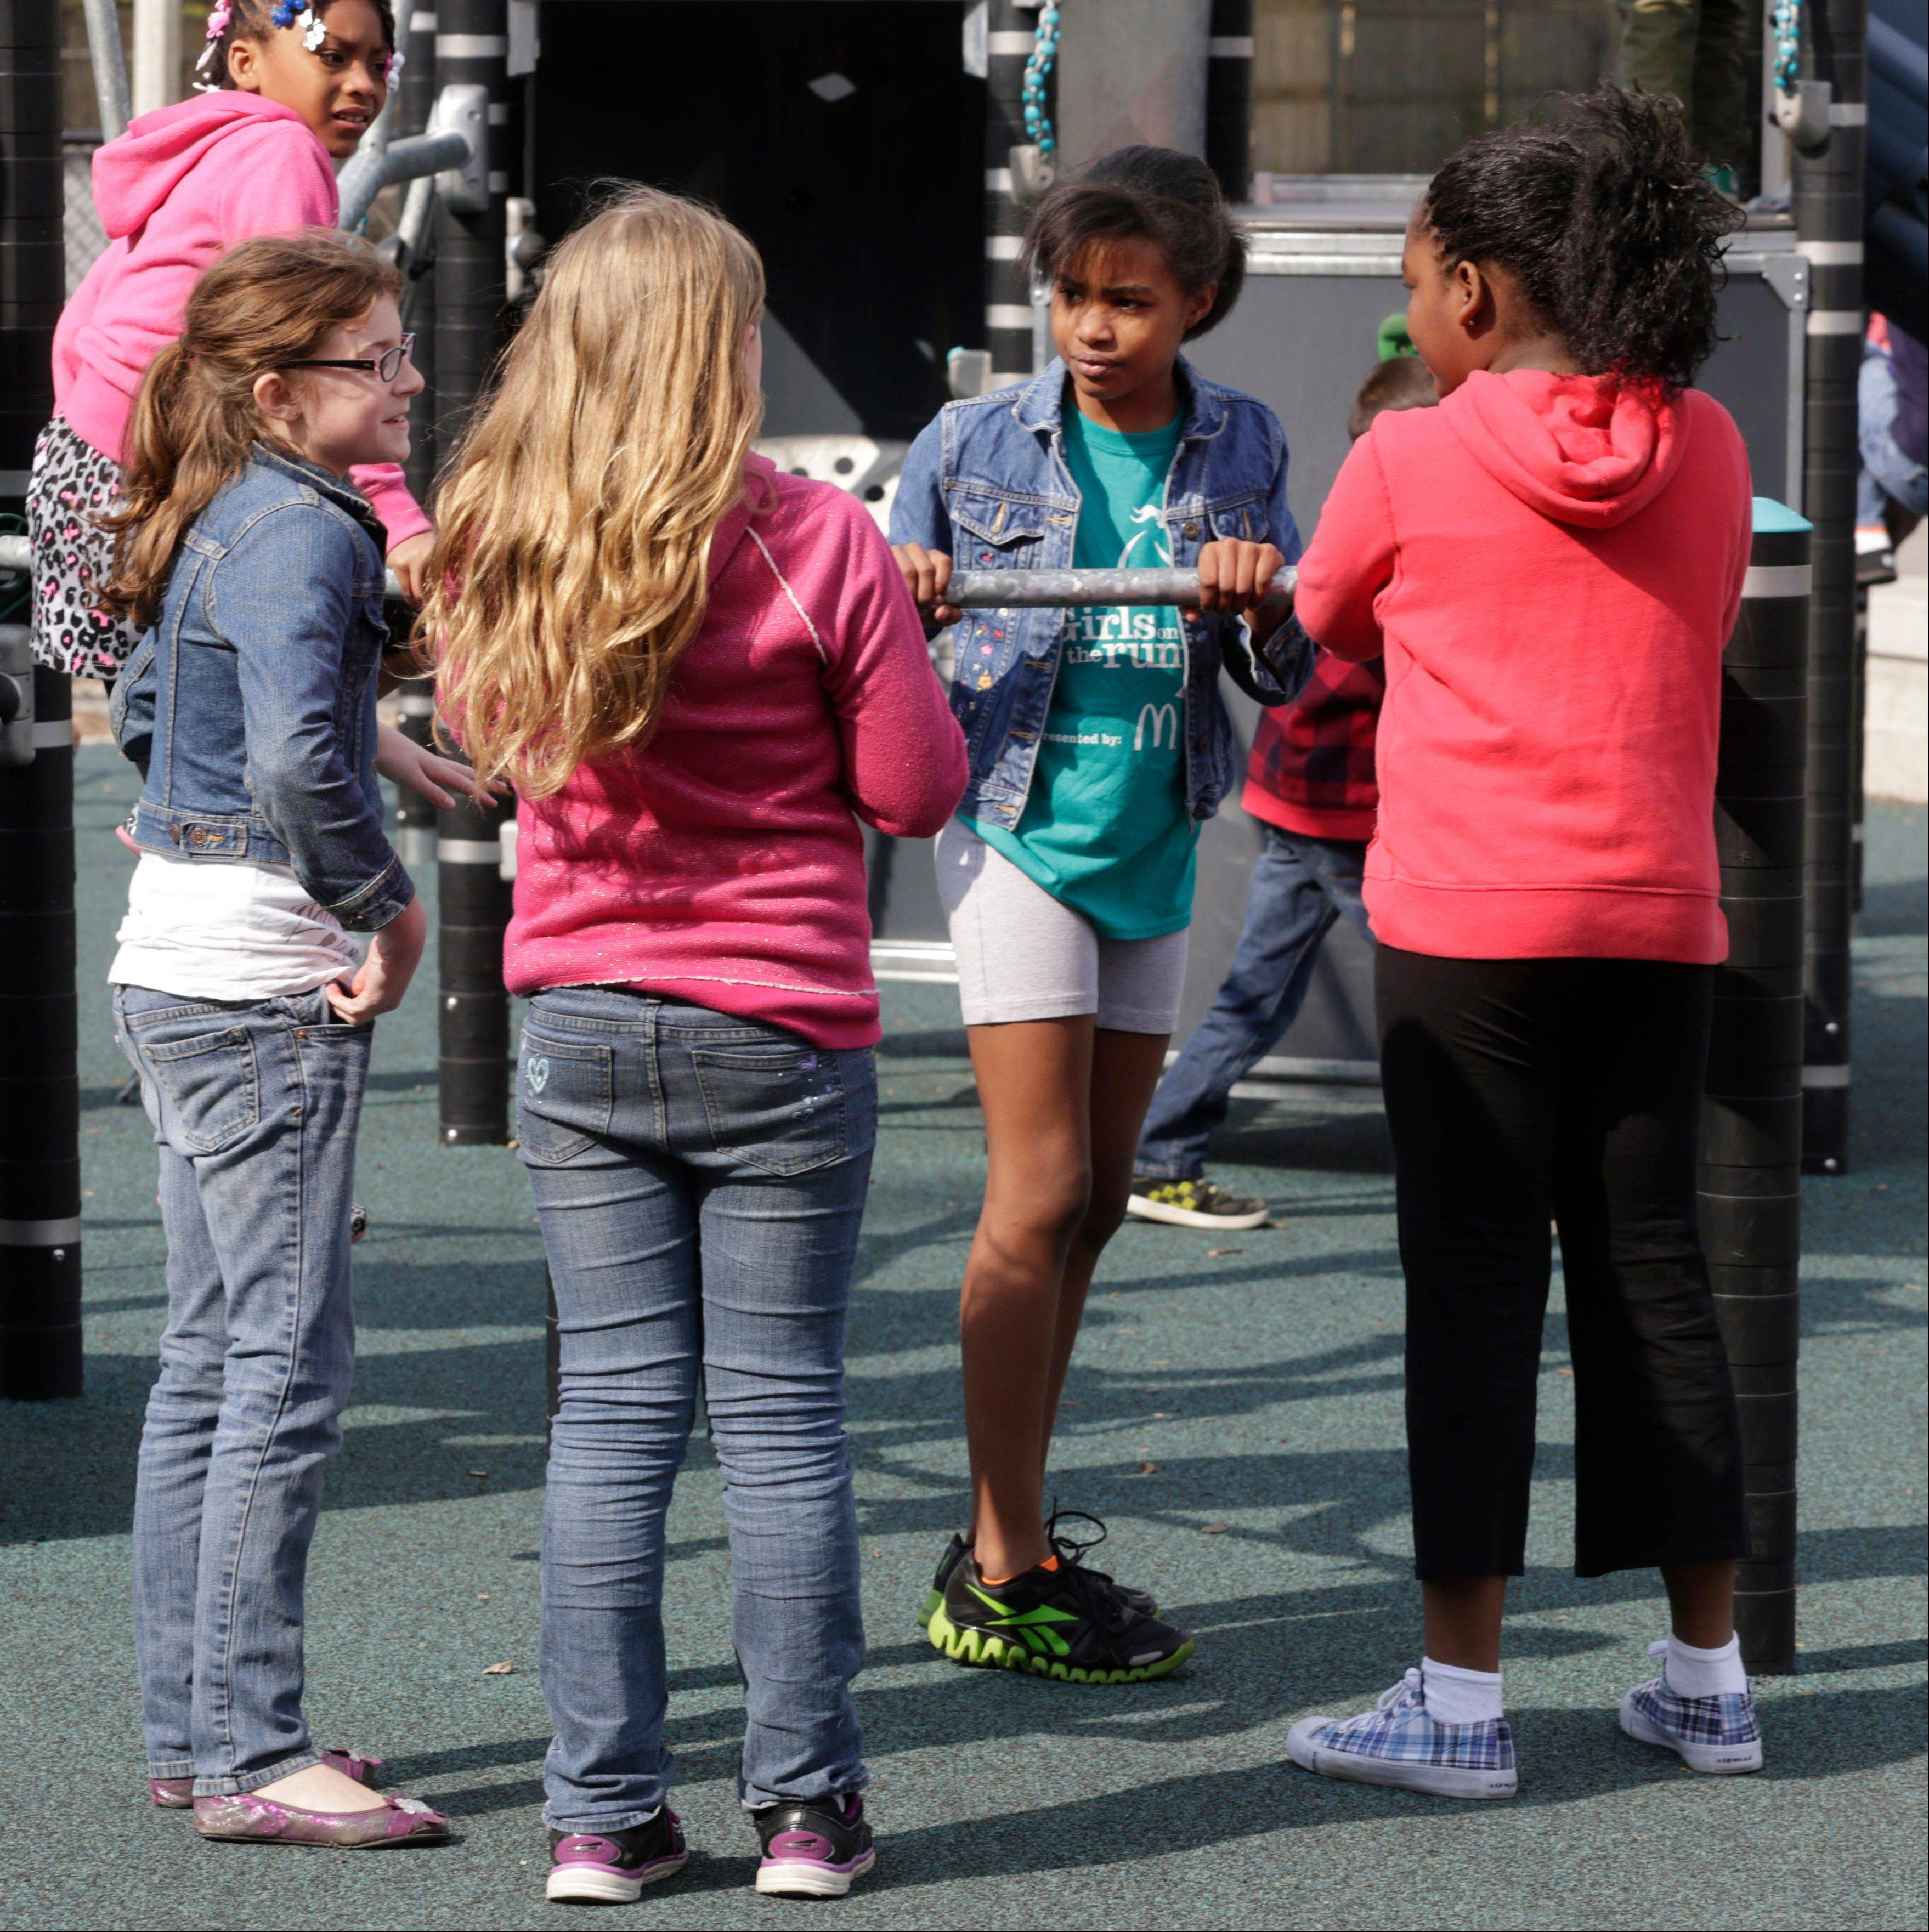 Ryan, a �gender variant� fourth grader, talks with friends during recess at her suburban Chicago school in early May.